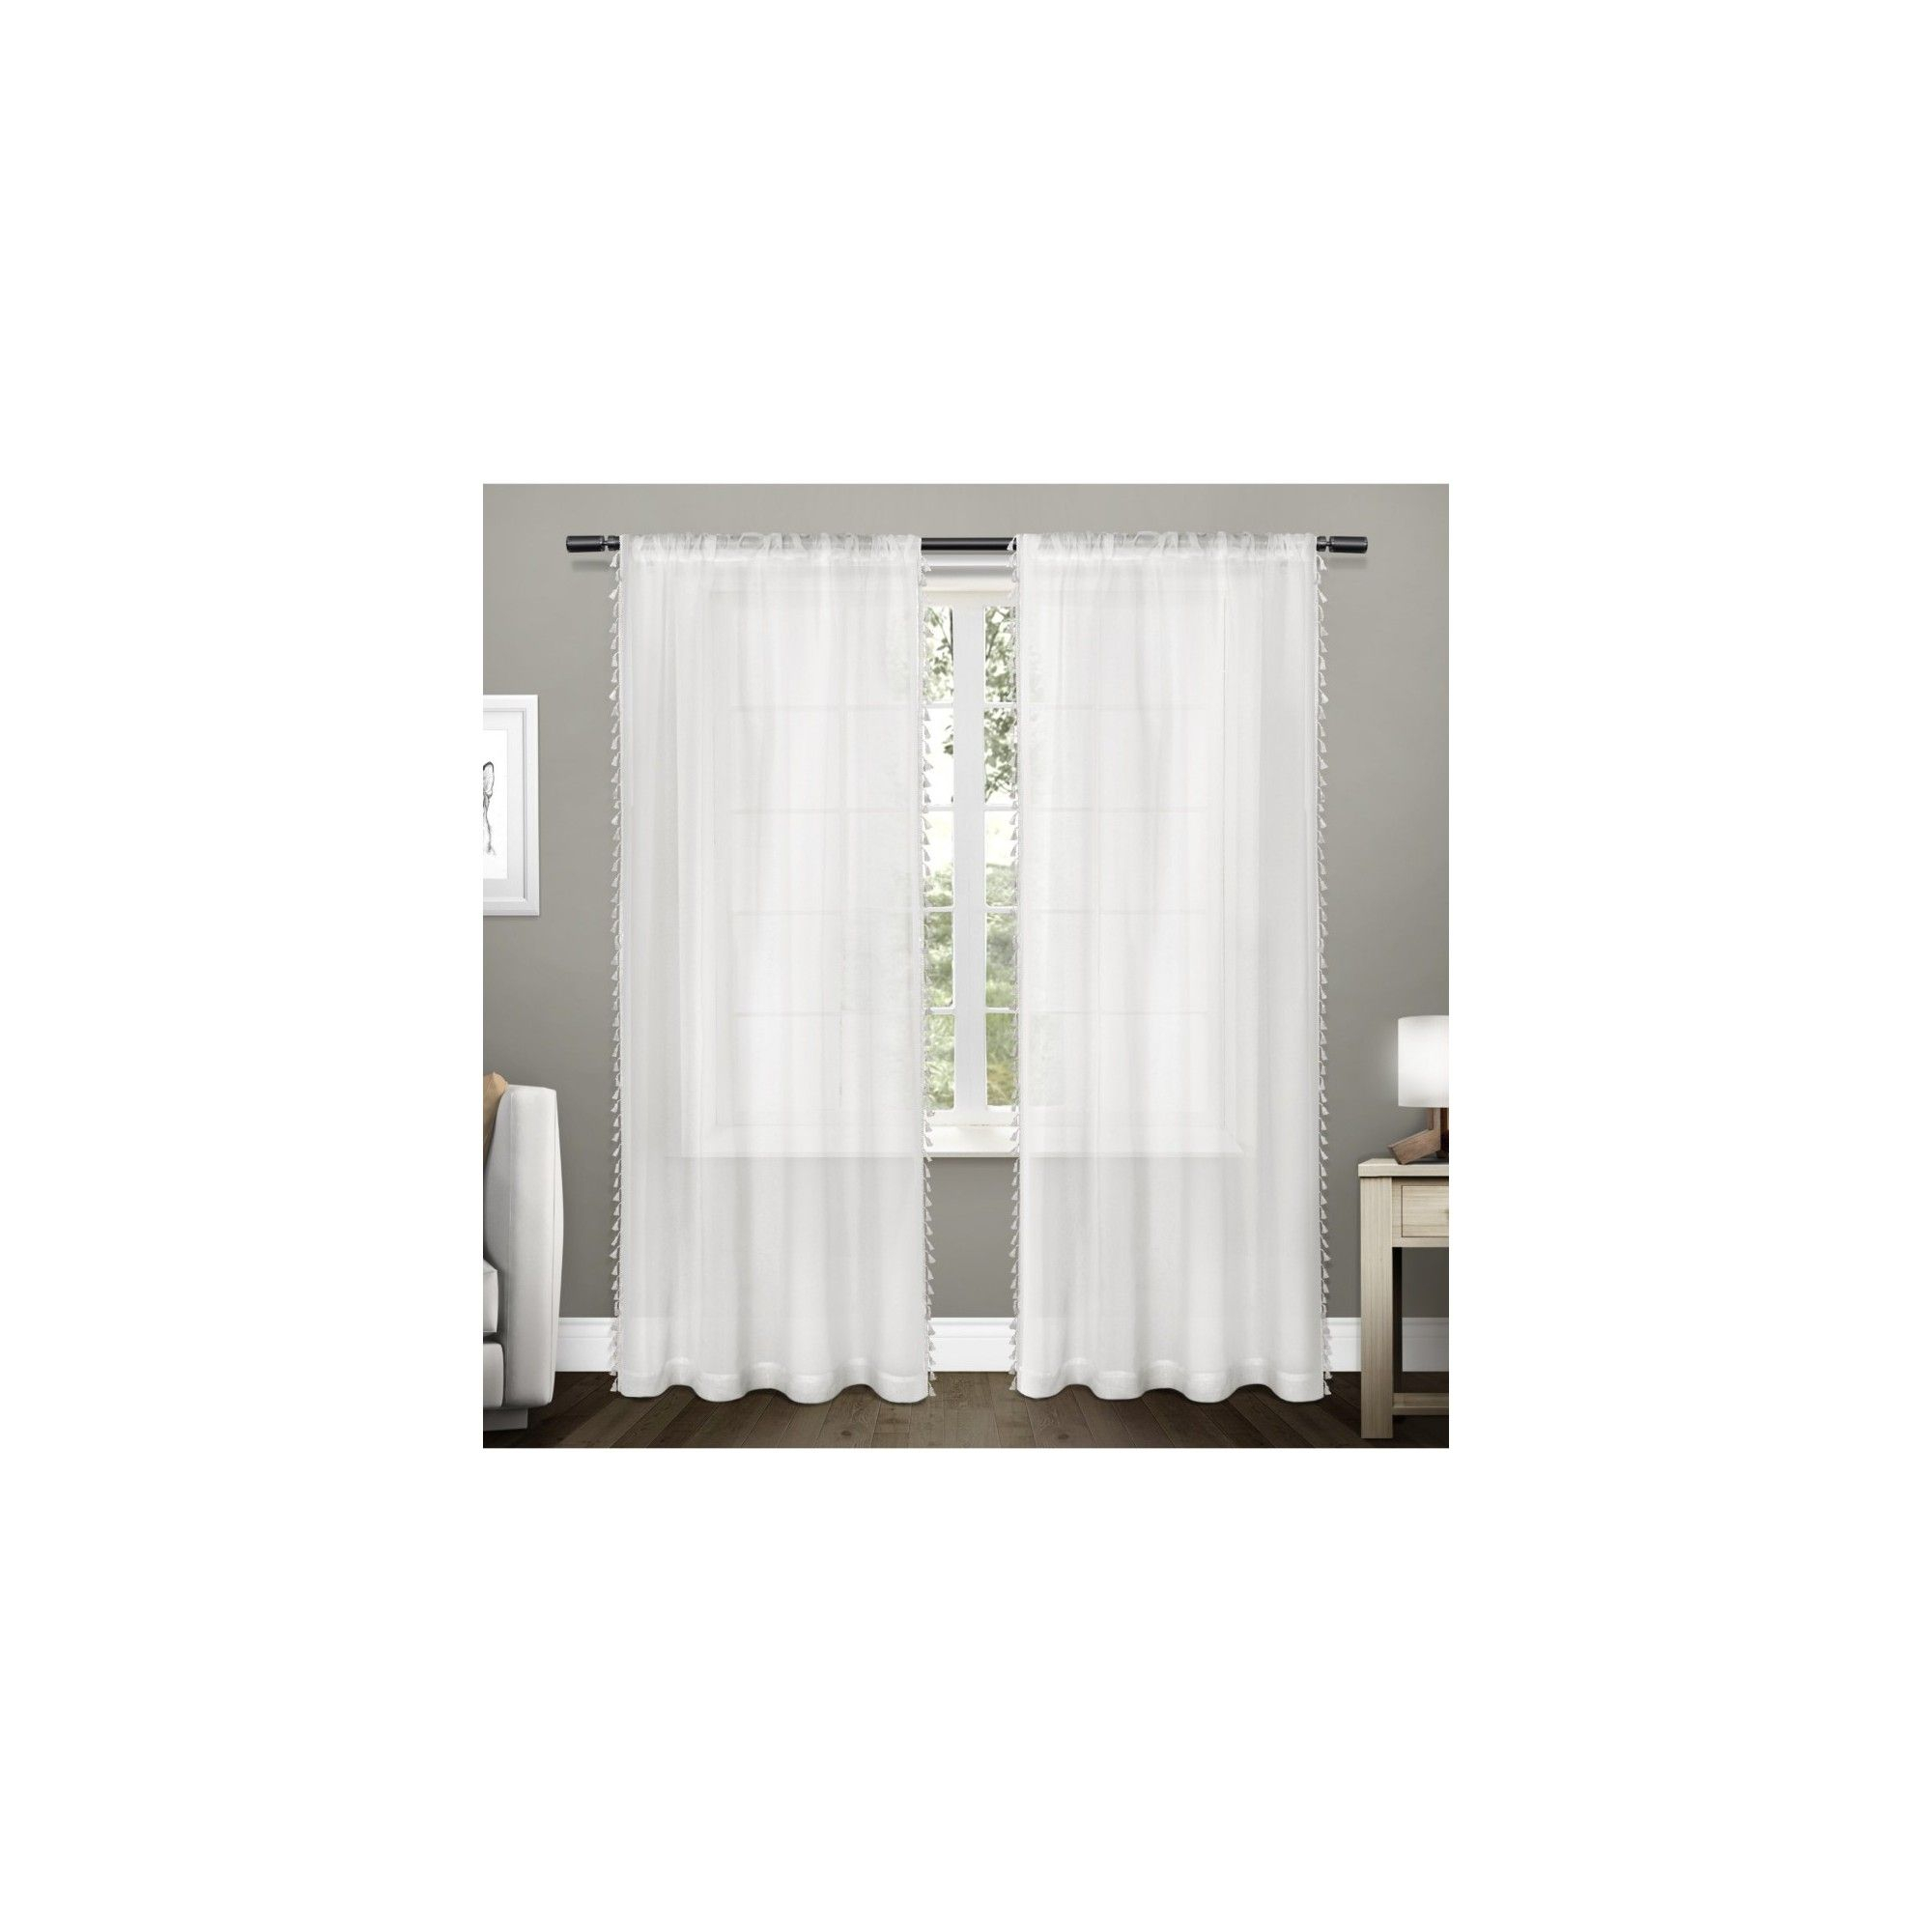 Tassels Textured Sheer Bordered Tassel Applique Rod Pocket With Regard To Tassels Applique Sheer Rod Pocket Top Curtain Panel Pairs (View 11 of 30)